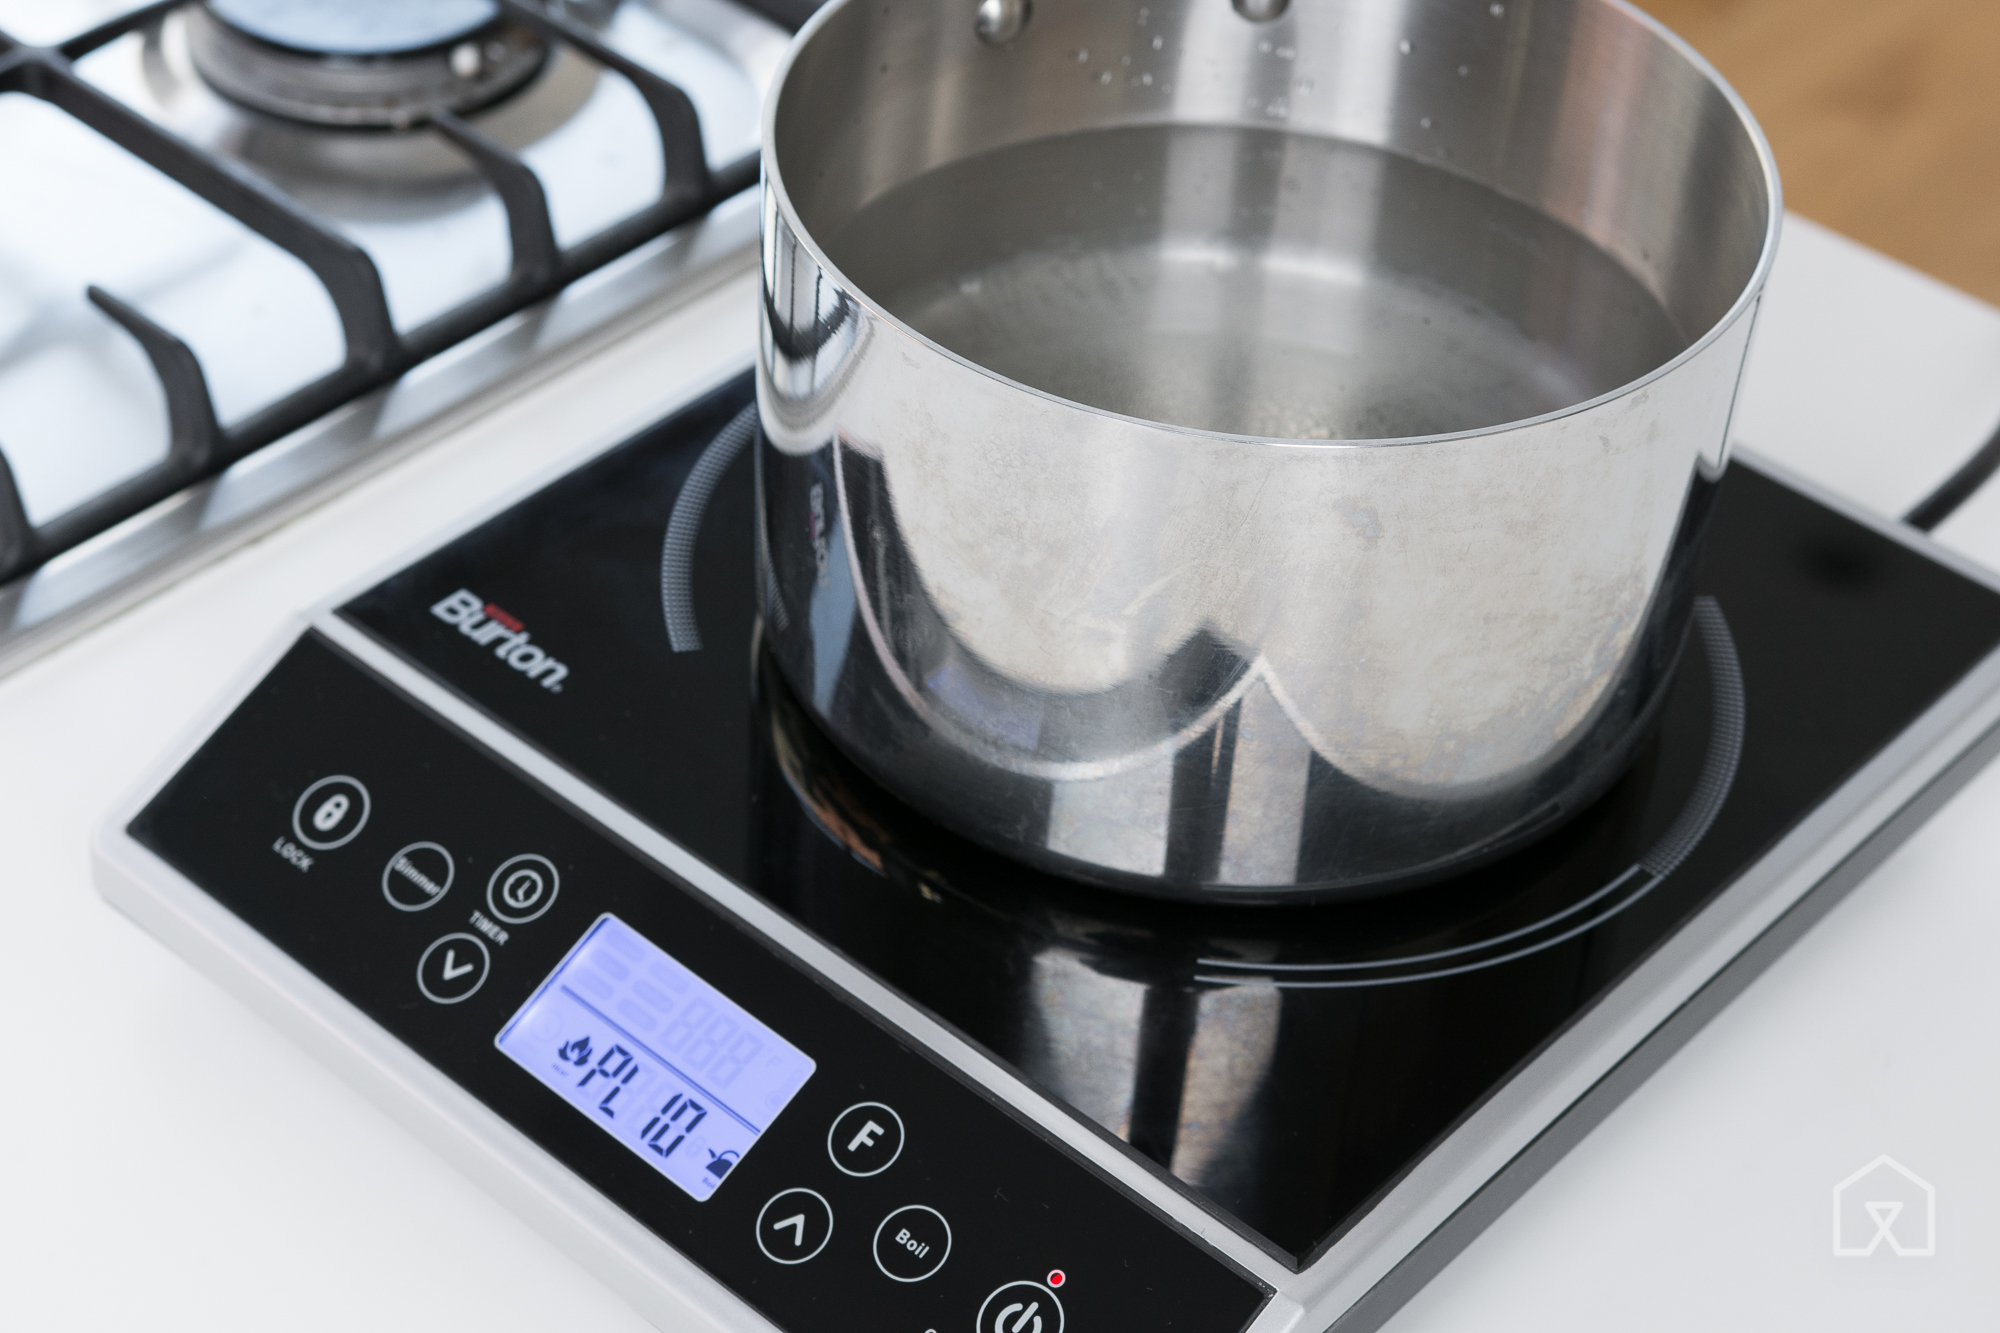 The Max Burton 6400 Digital Choice Induction Cooktop Boiled Water Slightly  Faster Than The Duxtop, But Itu0027s Noisier And More Expensive.